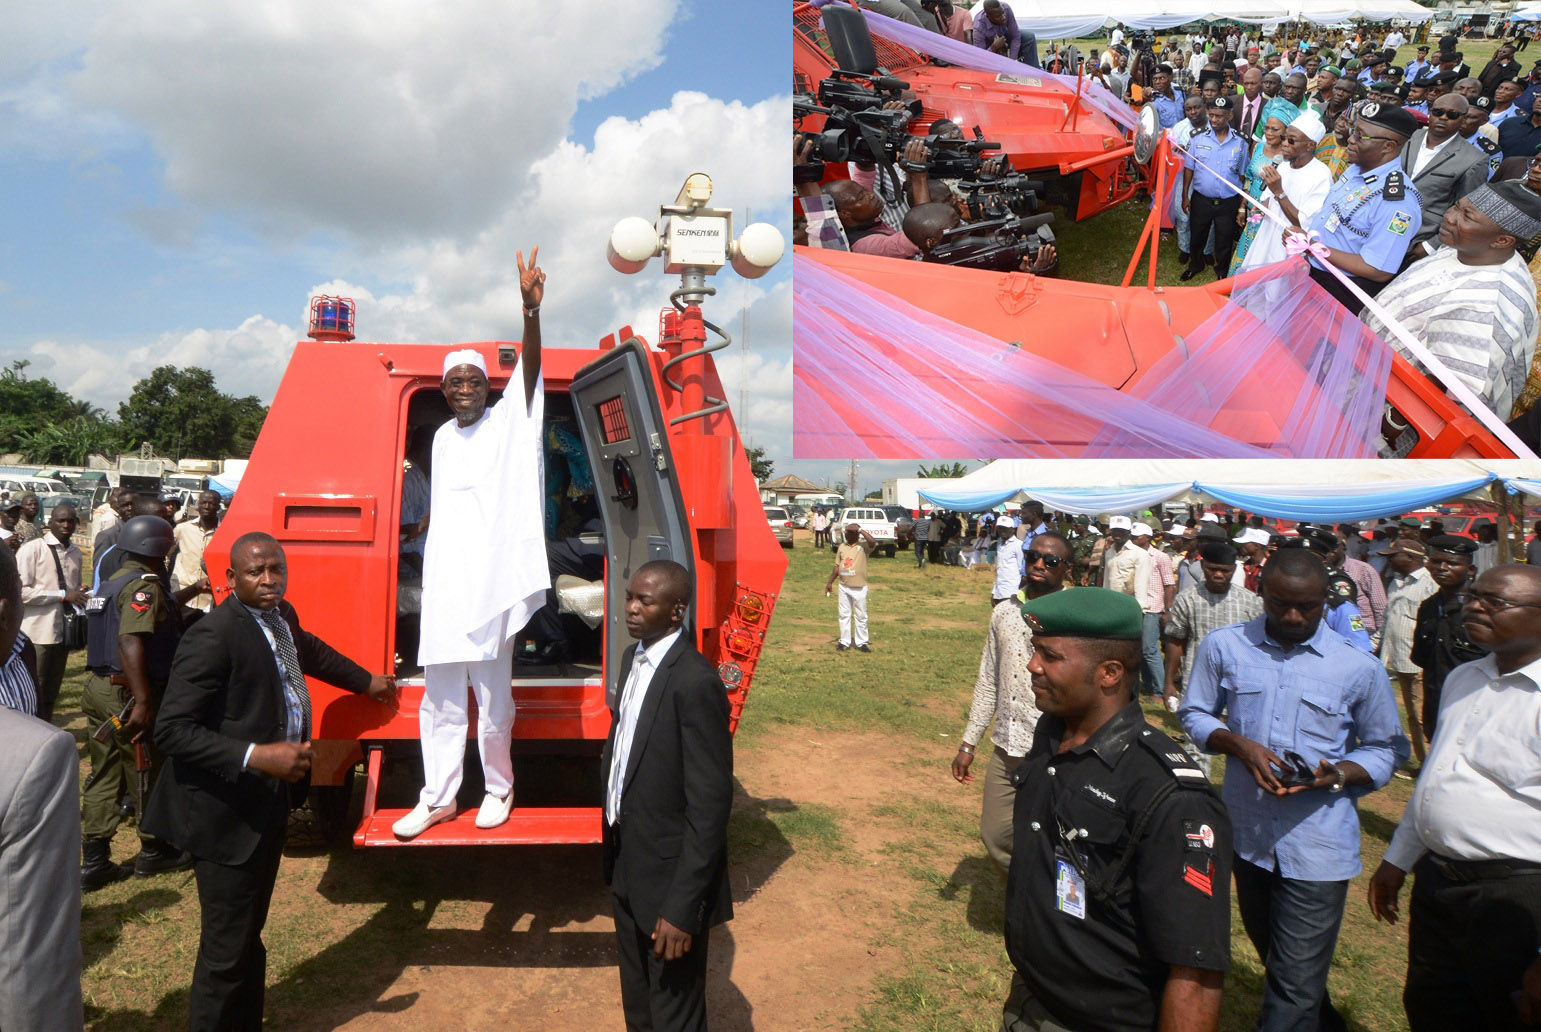 Governor State of Osun, Ogbeni Rauf Aregbesola after test driving one of the newly commissioned Amoured Personnel Carrier (APC) his Administration distributed to the State Security Personnel,. Insert: Governor State of Osun, Ogbeni Rauf Aregbesola (Middle in white); his deputy, Mrs Titi Laoye_Tomori; Speaker of the House of Assembly, Hon. Najeem Salam (left); Assistant Inspector General of Police (AIG) Zone 11, Mr David Omolaja (2nd left); Osun Commissioner of Police, Mr.Maishanu Ibrahim (5th left); Special Adviser to the Governor on Security Matters, Barrister Amos Adekunle (6th left) and others, during the commissioning of Amoured Personnel Carrier (APC) in Osogbo, the State of Osun on Thursday 11-07-2014